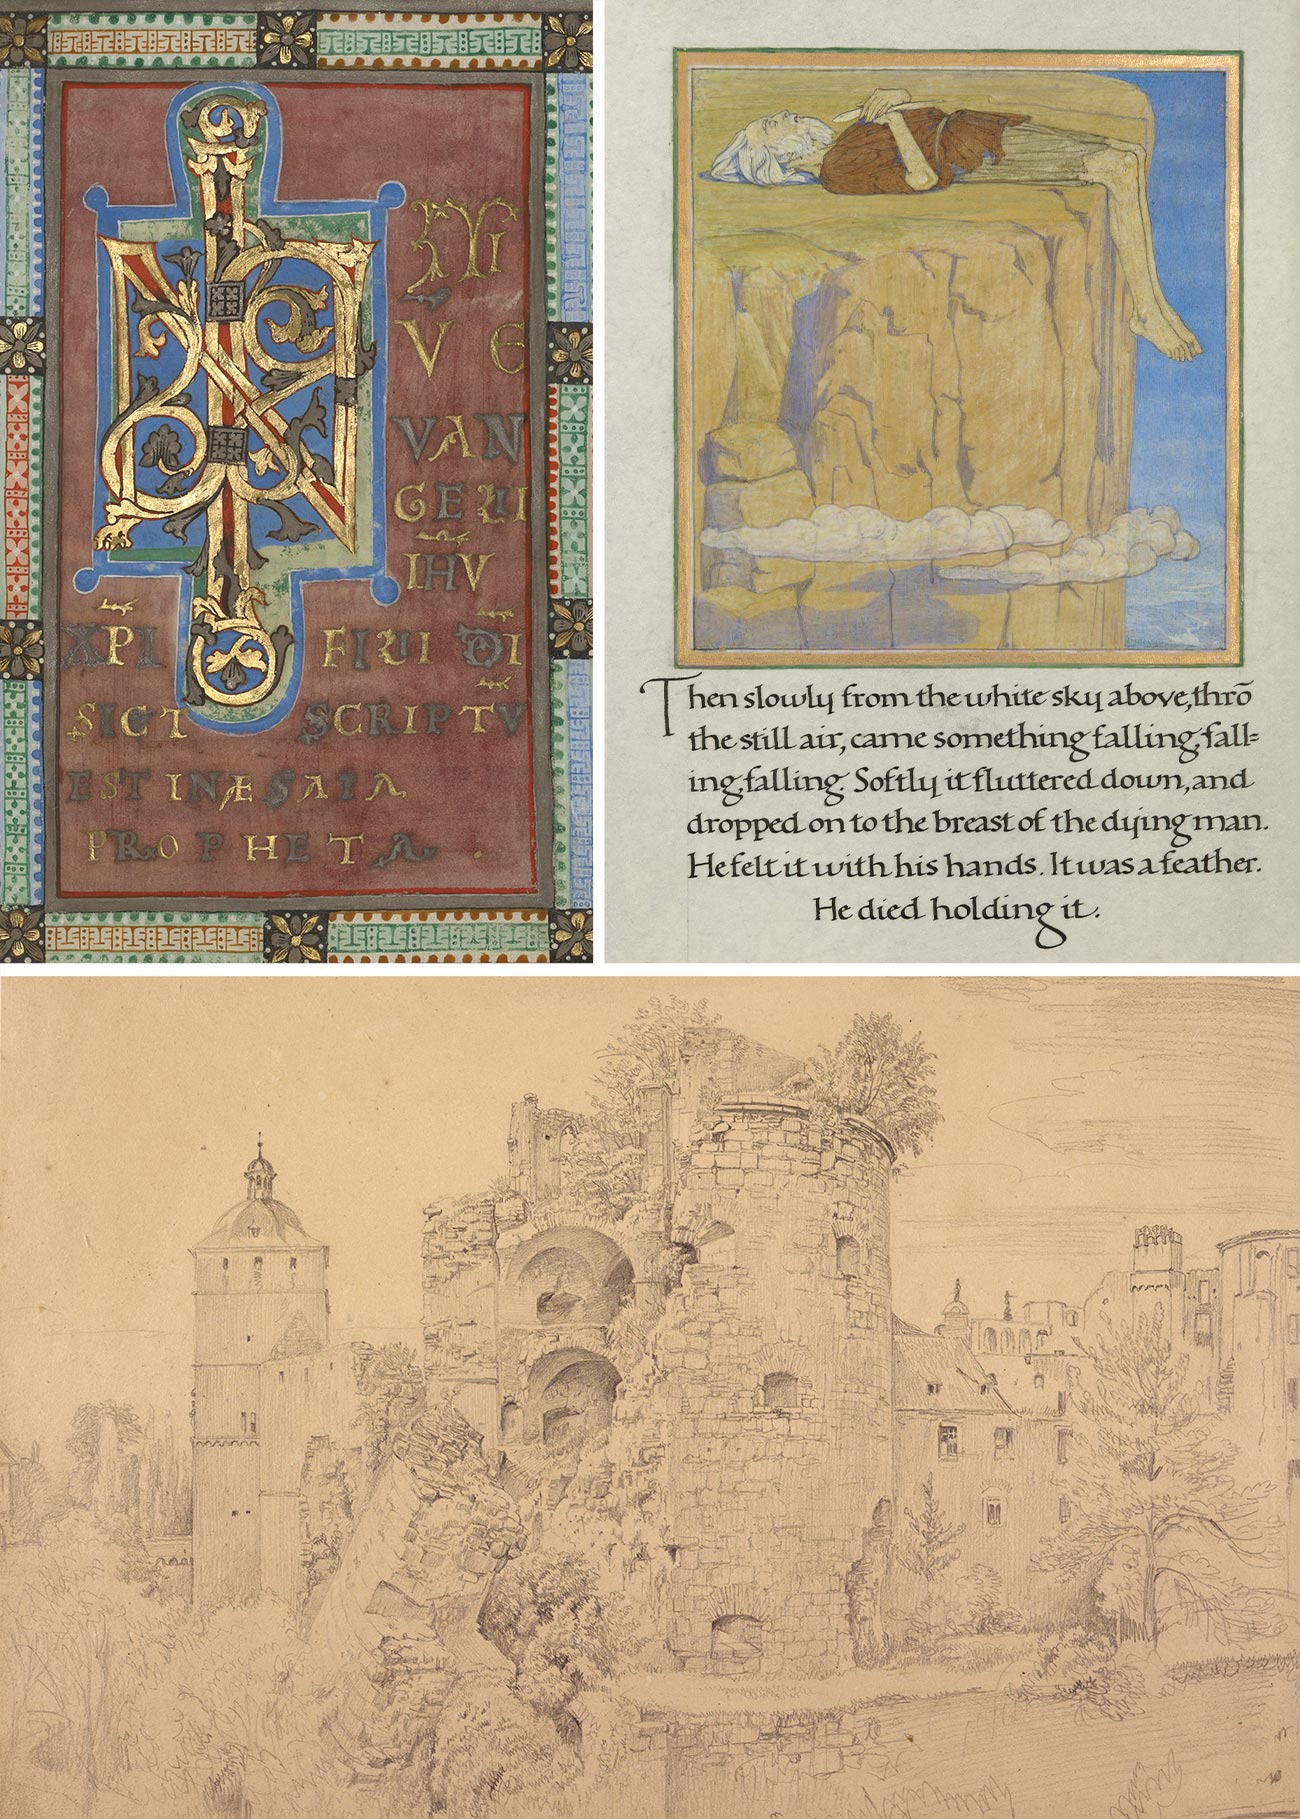 Three images. The top left is a fancy geometric design with gold leaf, the top right is an elderly man laying with his legs dangling over a cliff, and the bottom image is a drawing of a destroyed castle with trees growing on the ruins.